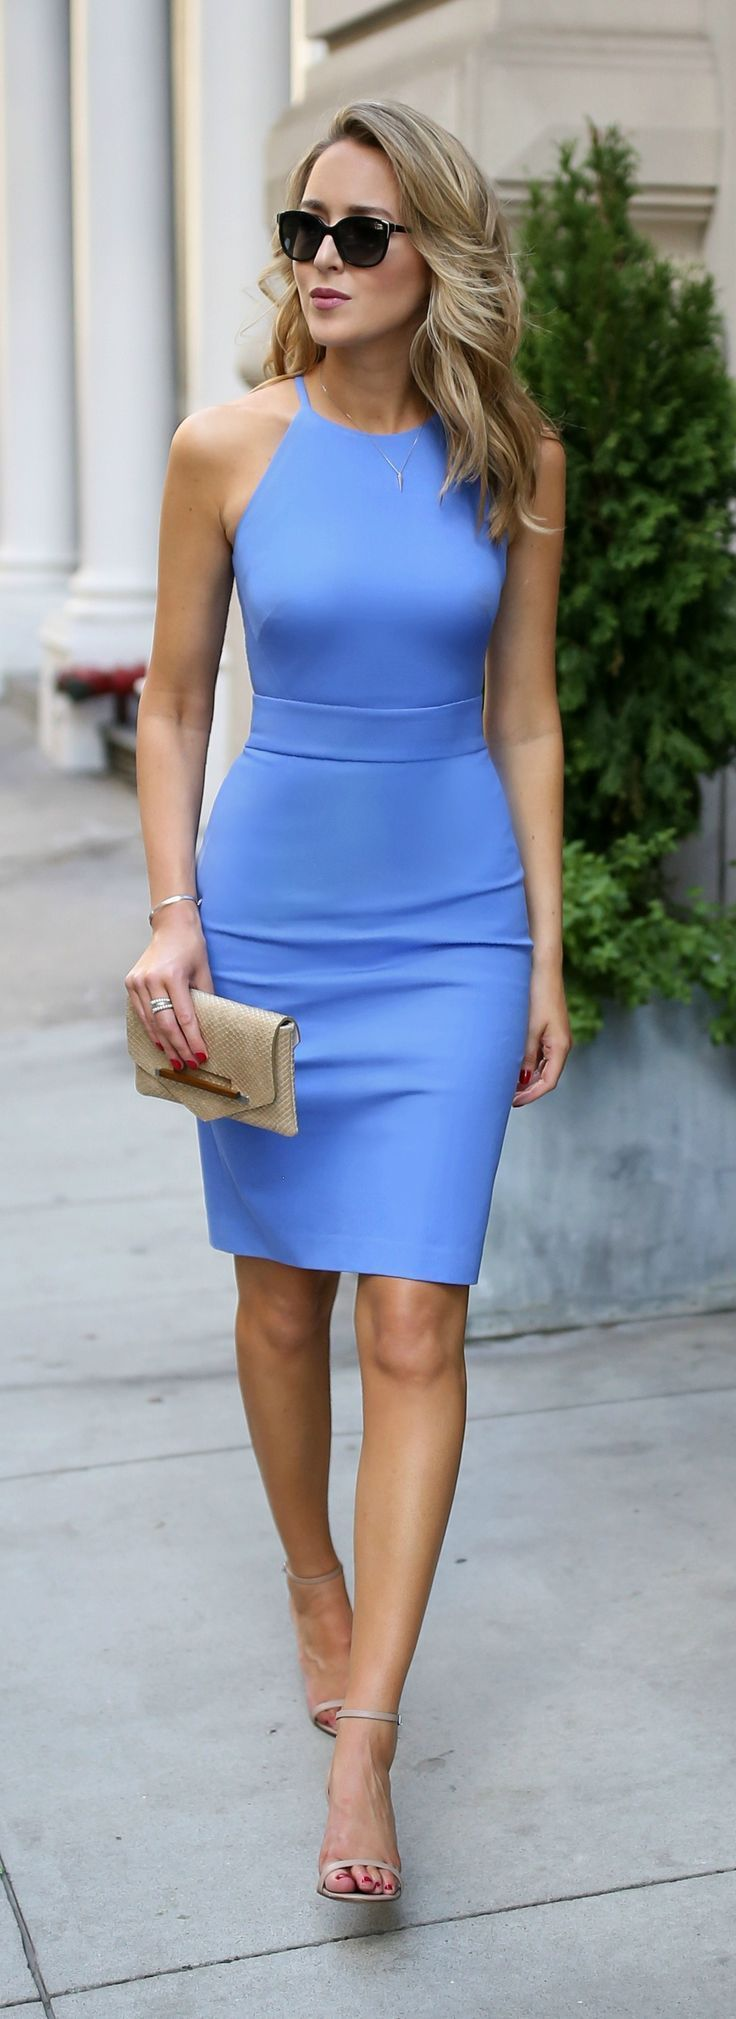 3 Day-To-Night Dresses You Need // Periwinkle blue classic sleeveless sheath dress, cinched waist + gold clutch, nude strappy sandals, wavy hairstyle, fashion blogger {Banana Republic}